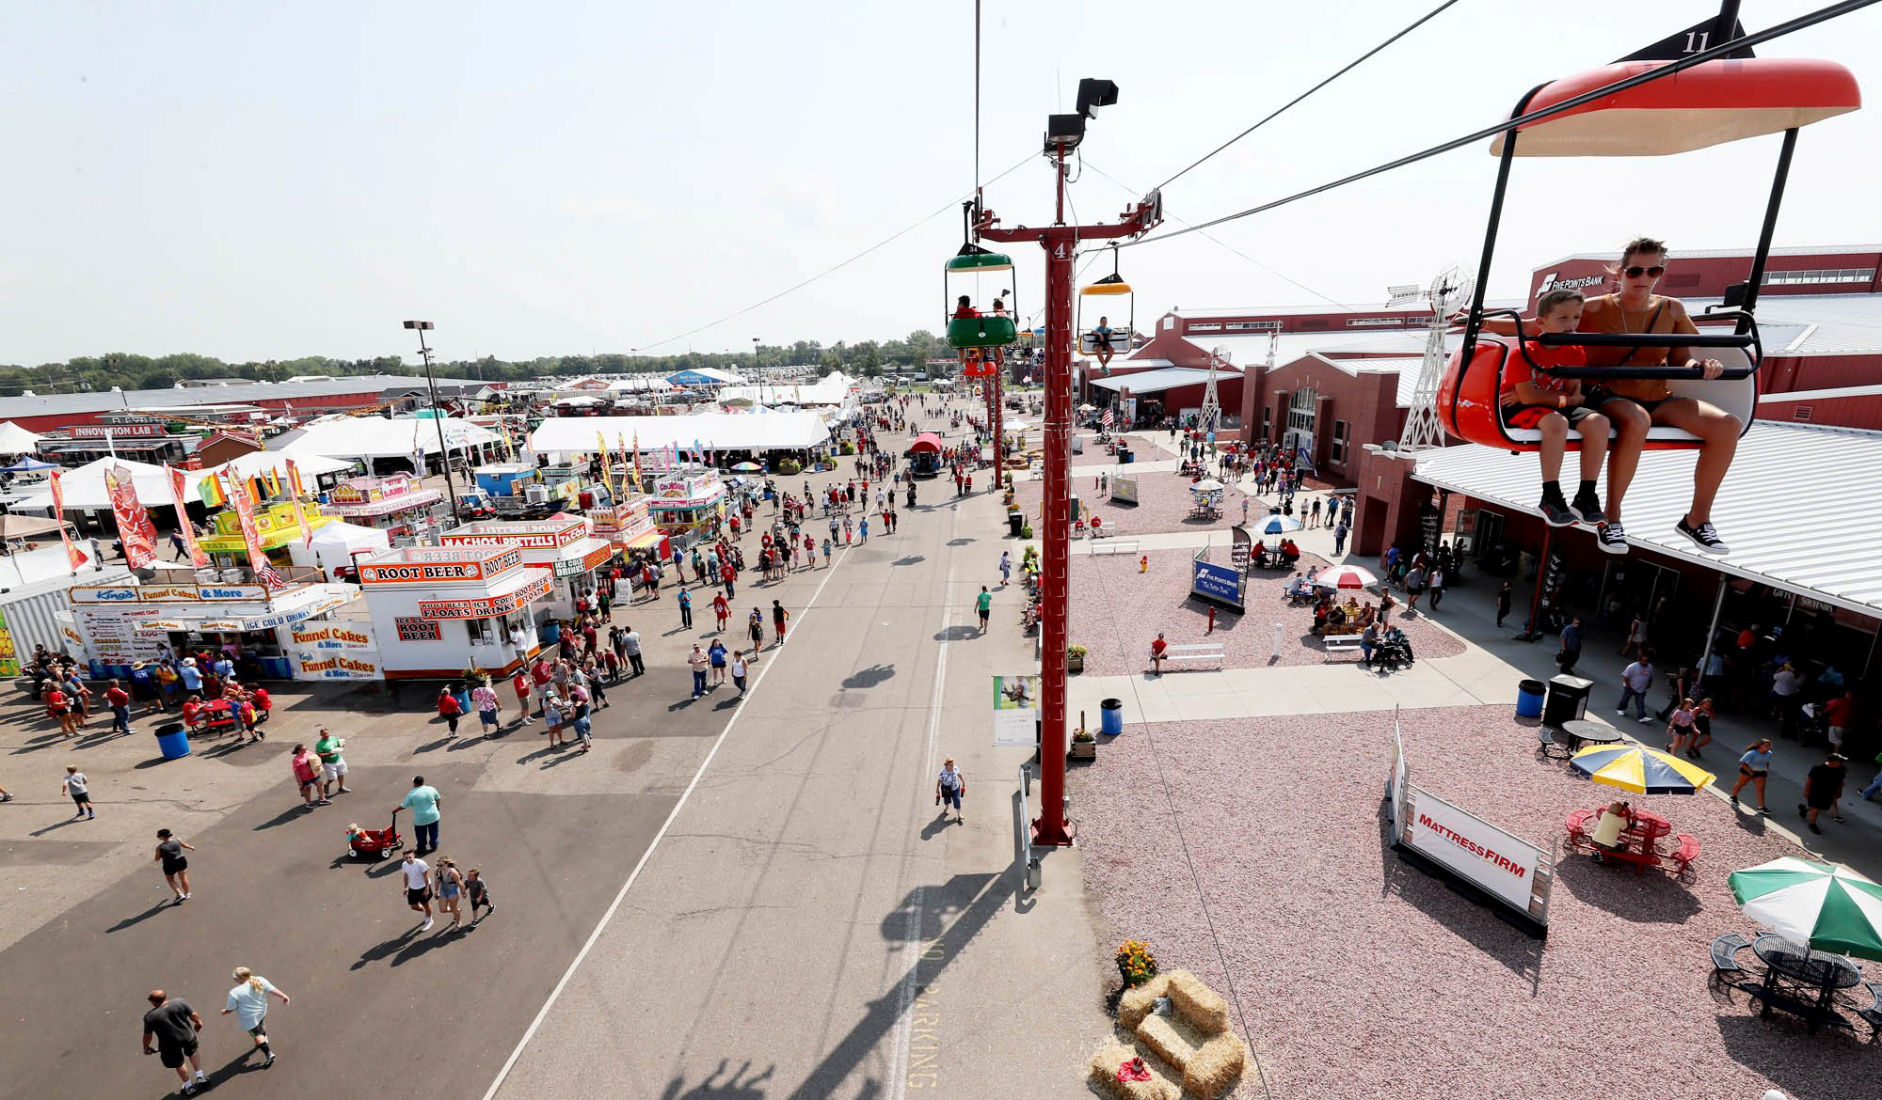 A very great State Fair